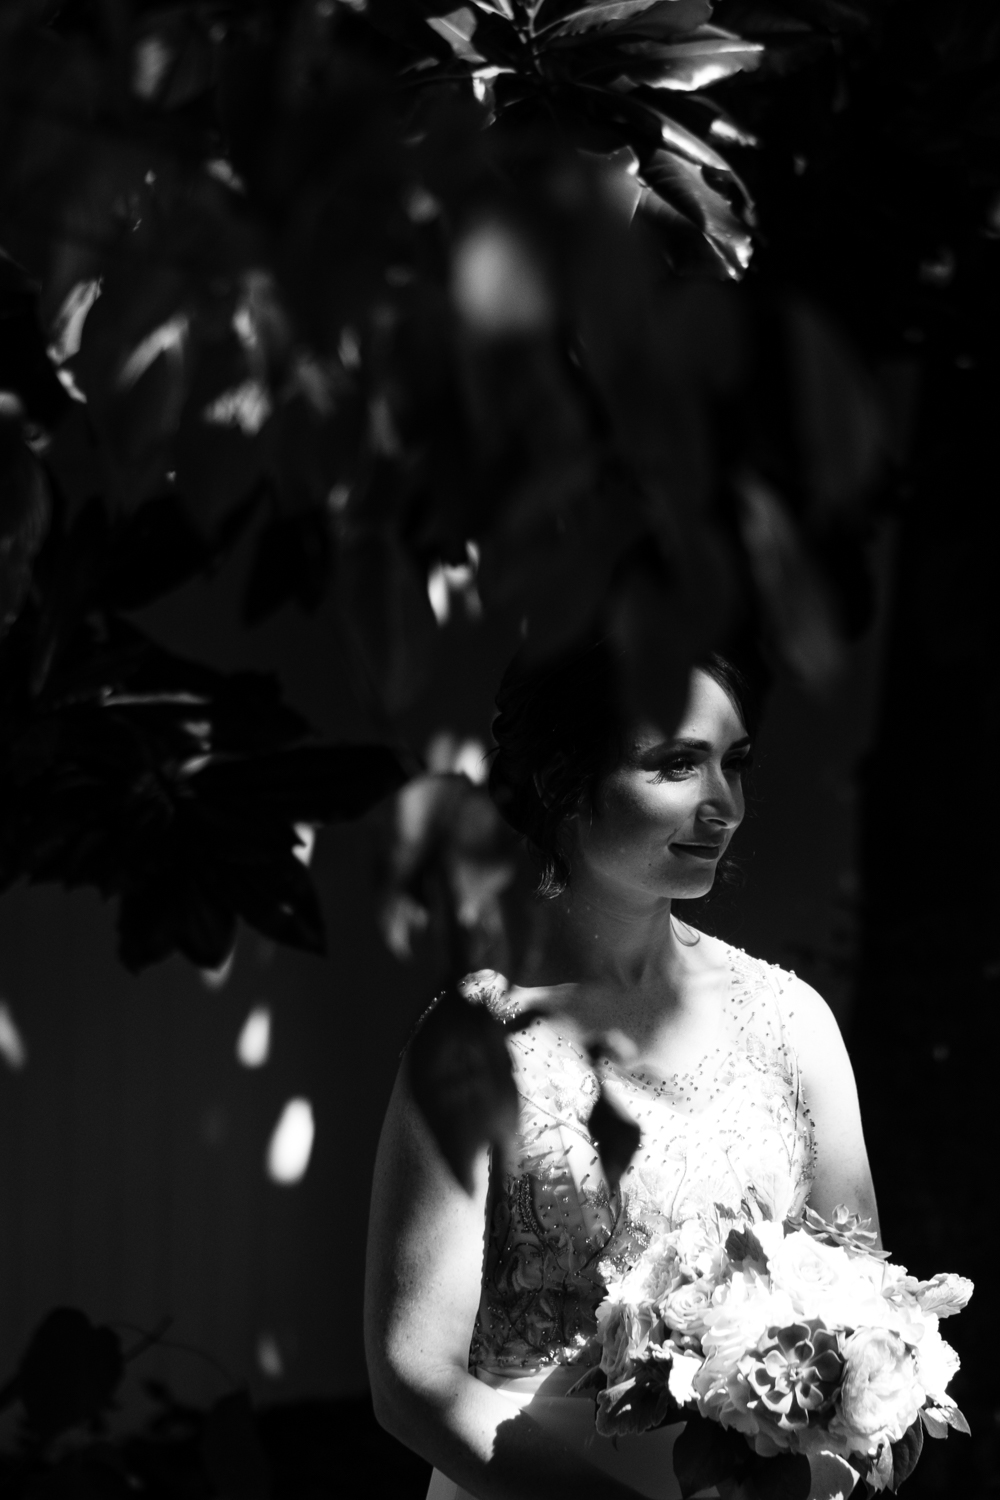 Elina_Dan_Nashville_Wedding-16.jpg